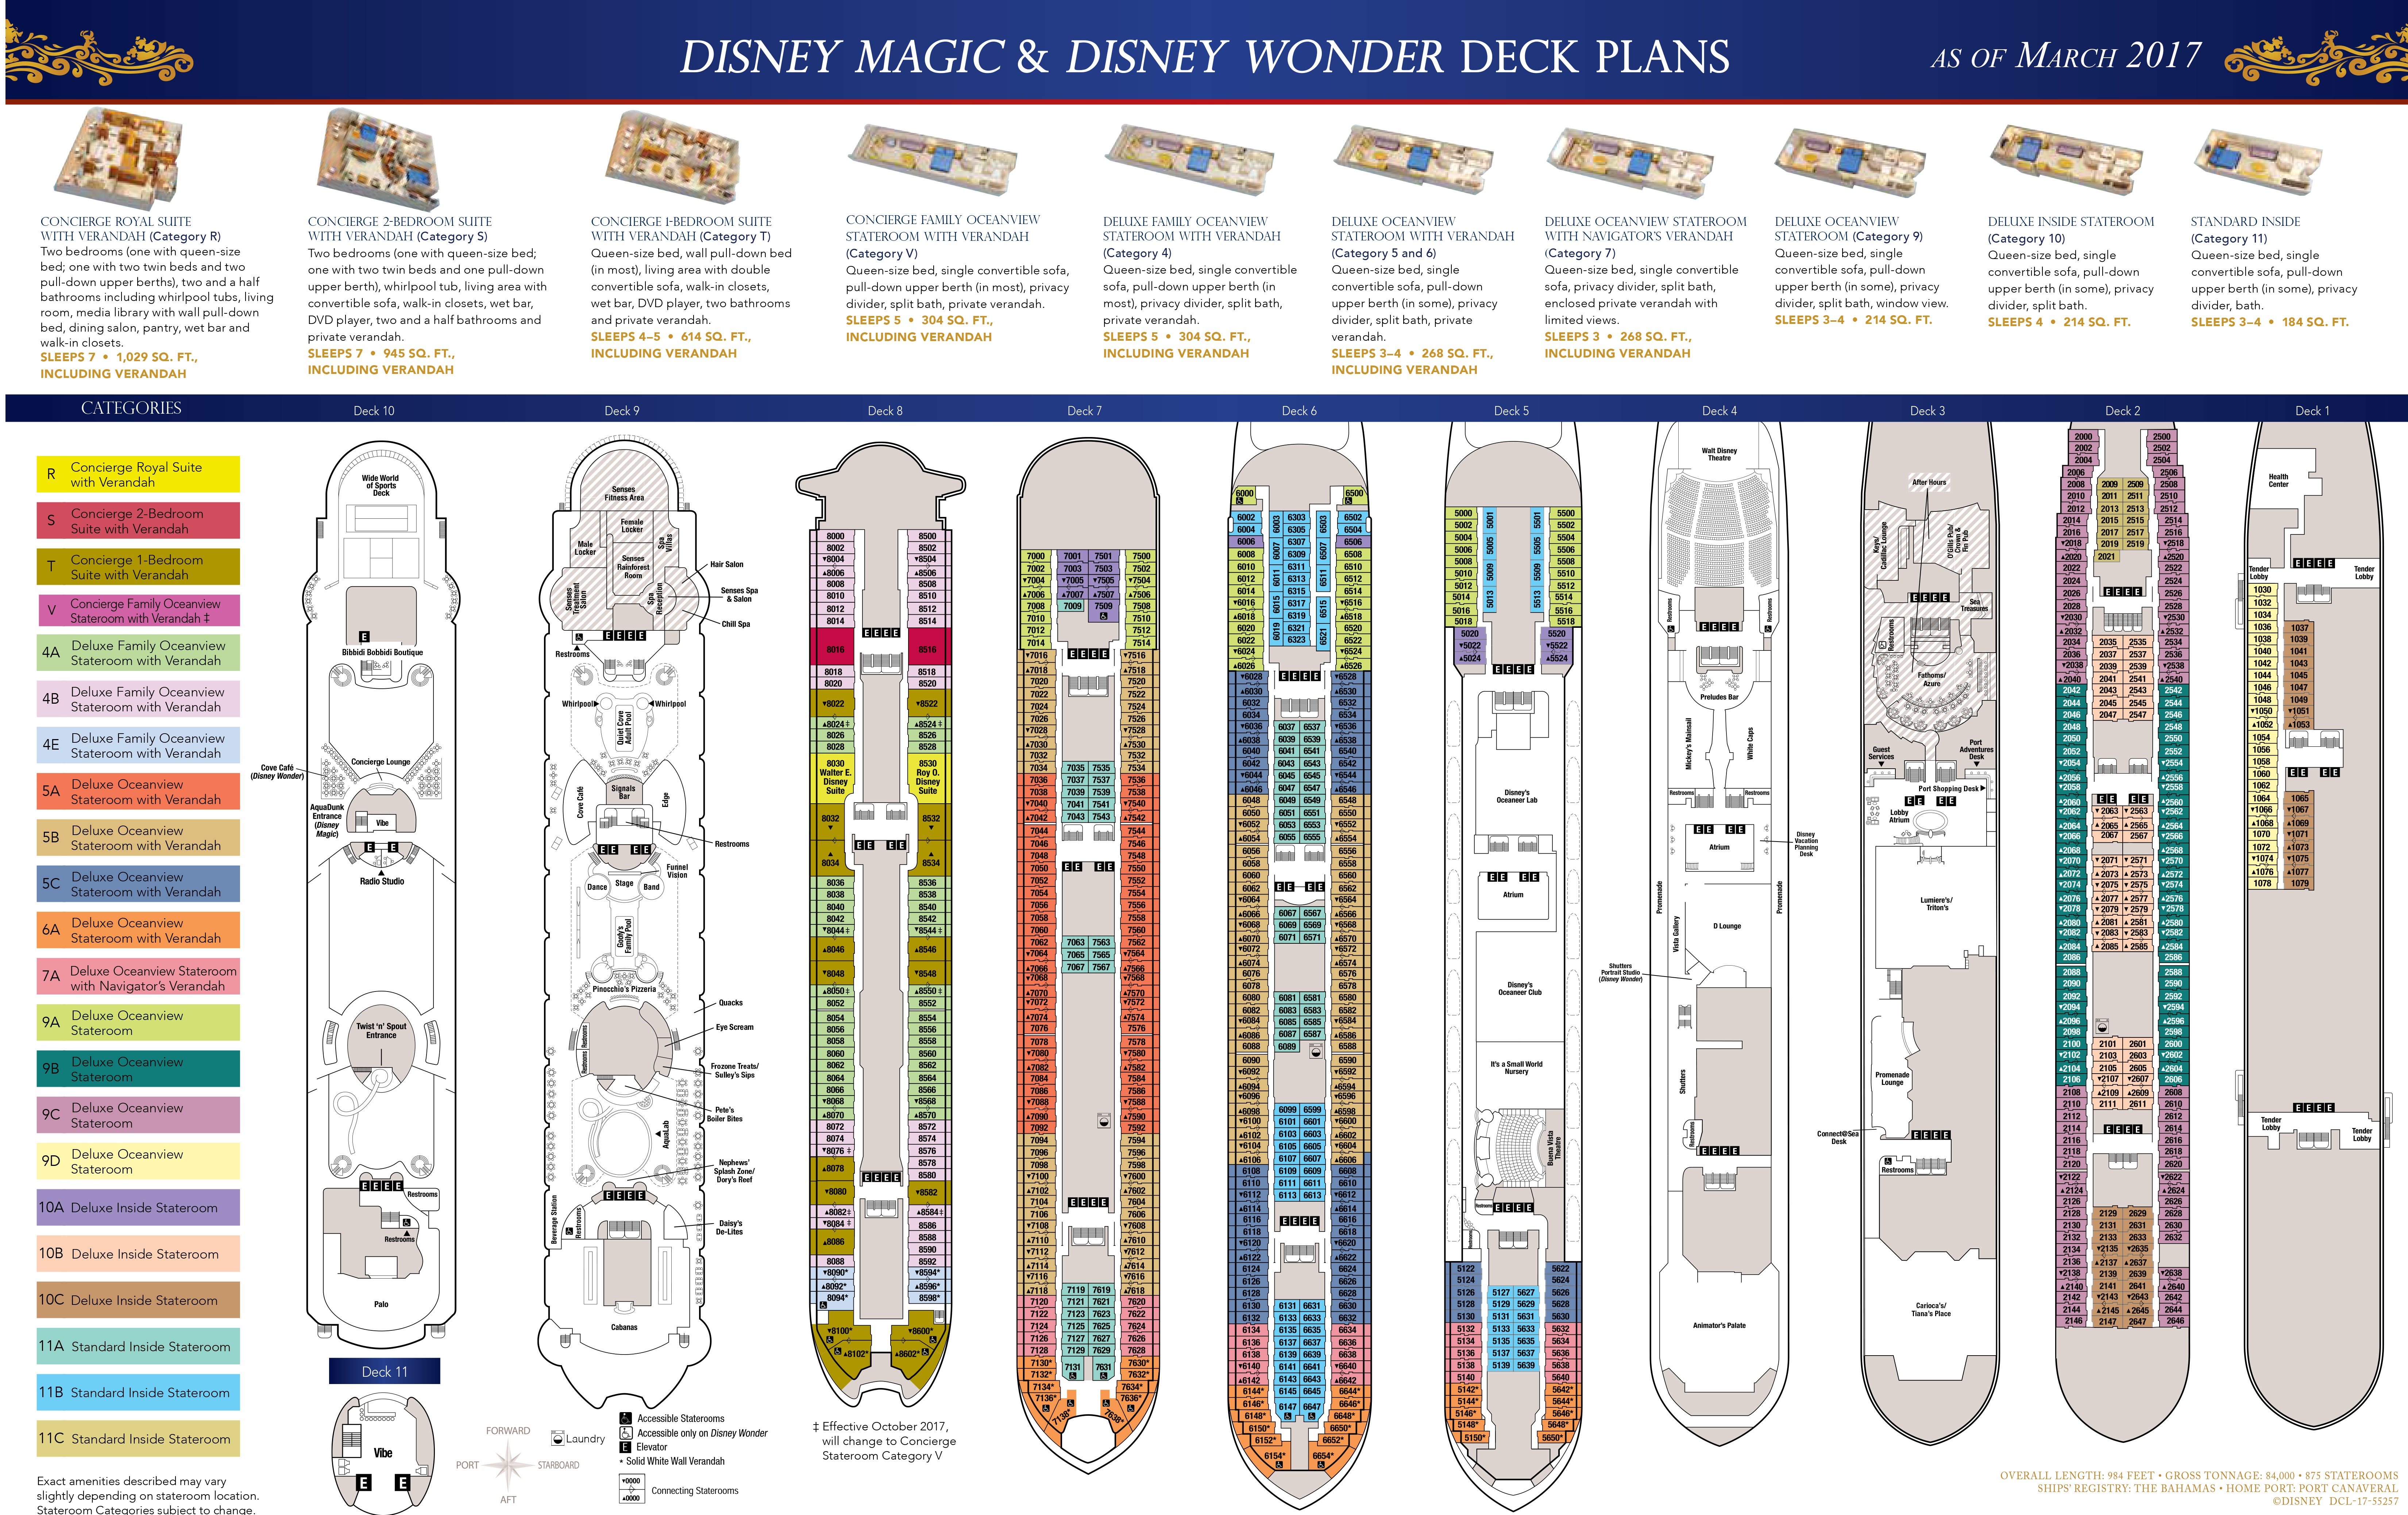 Disney Magic & Disney Wonder • The Disney